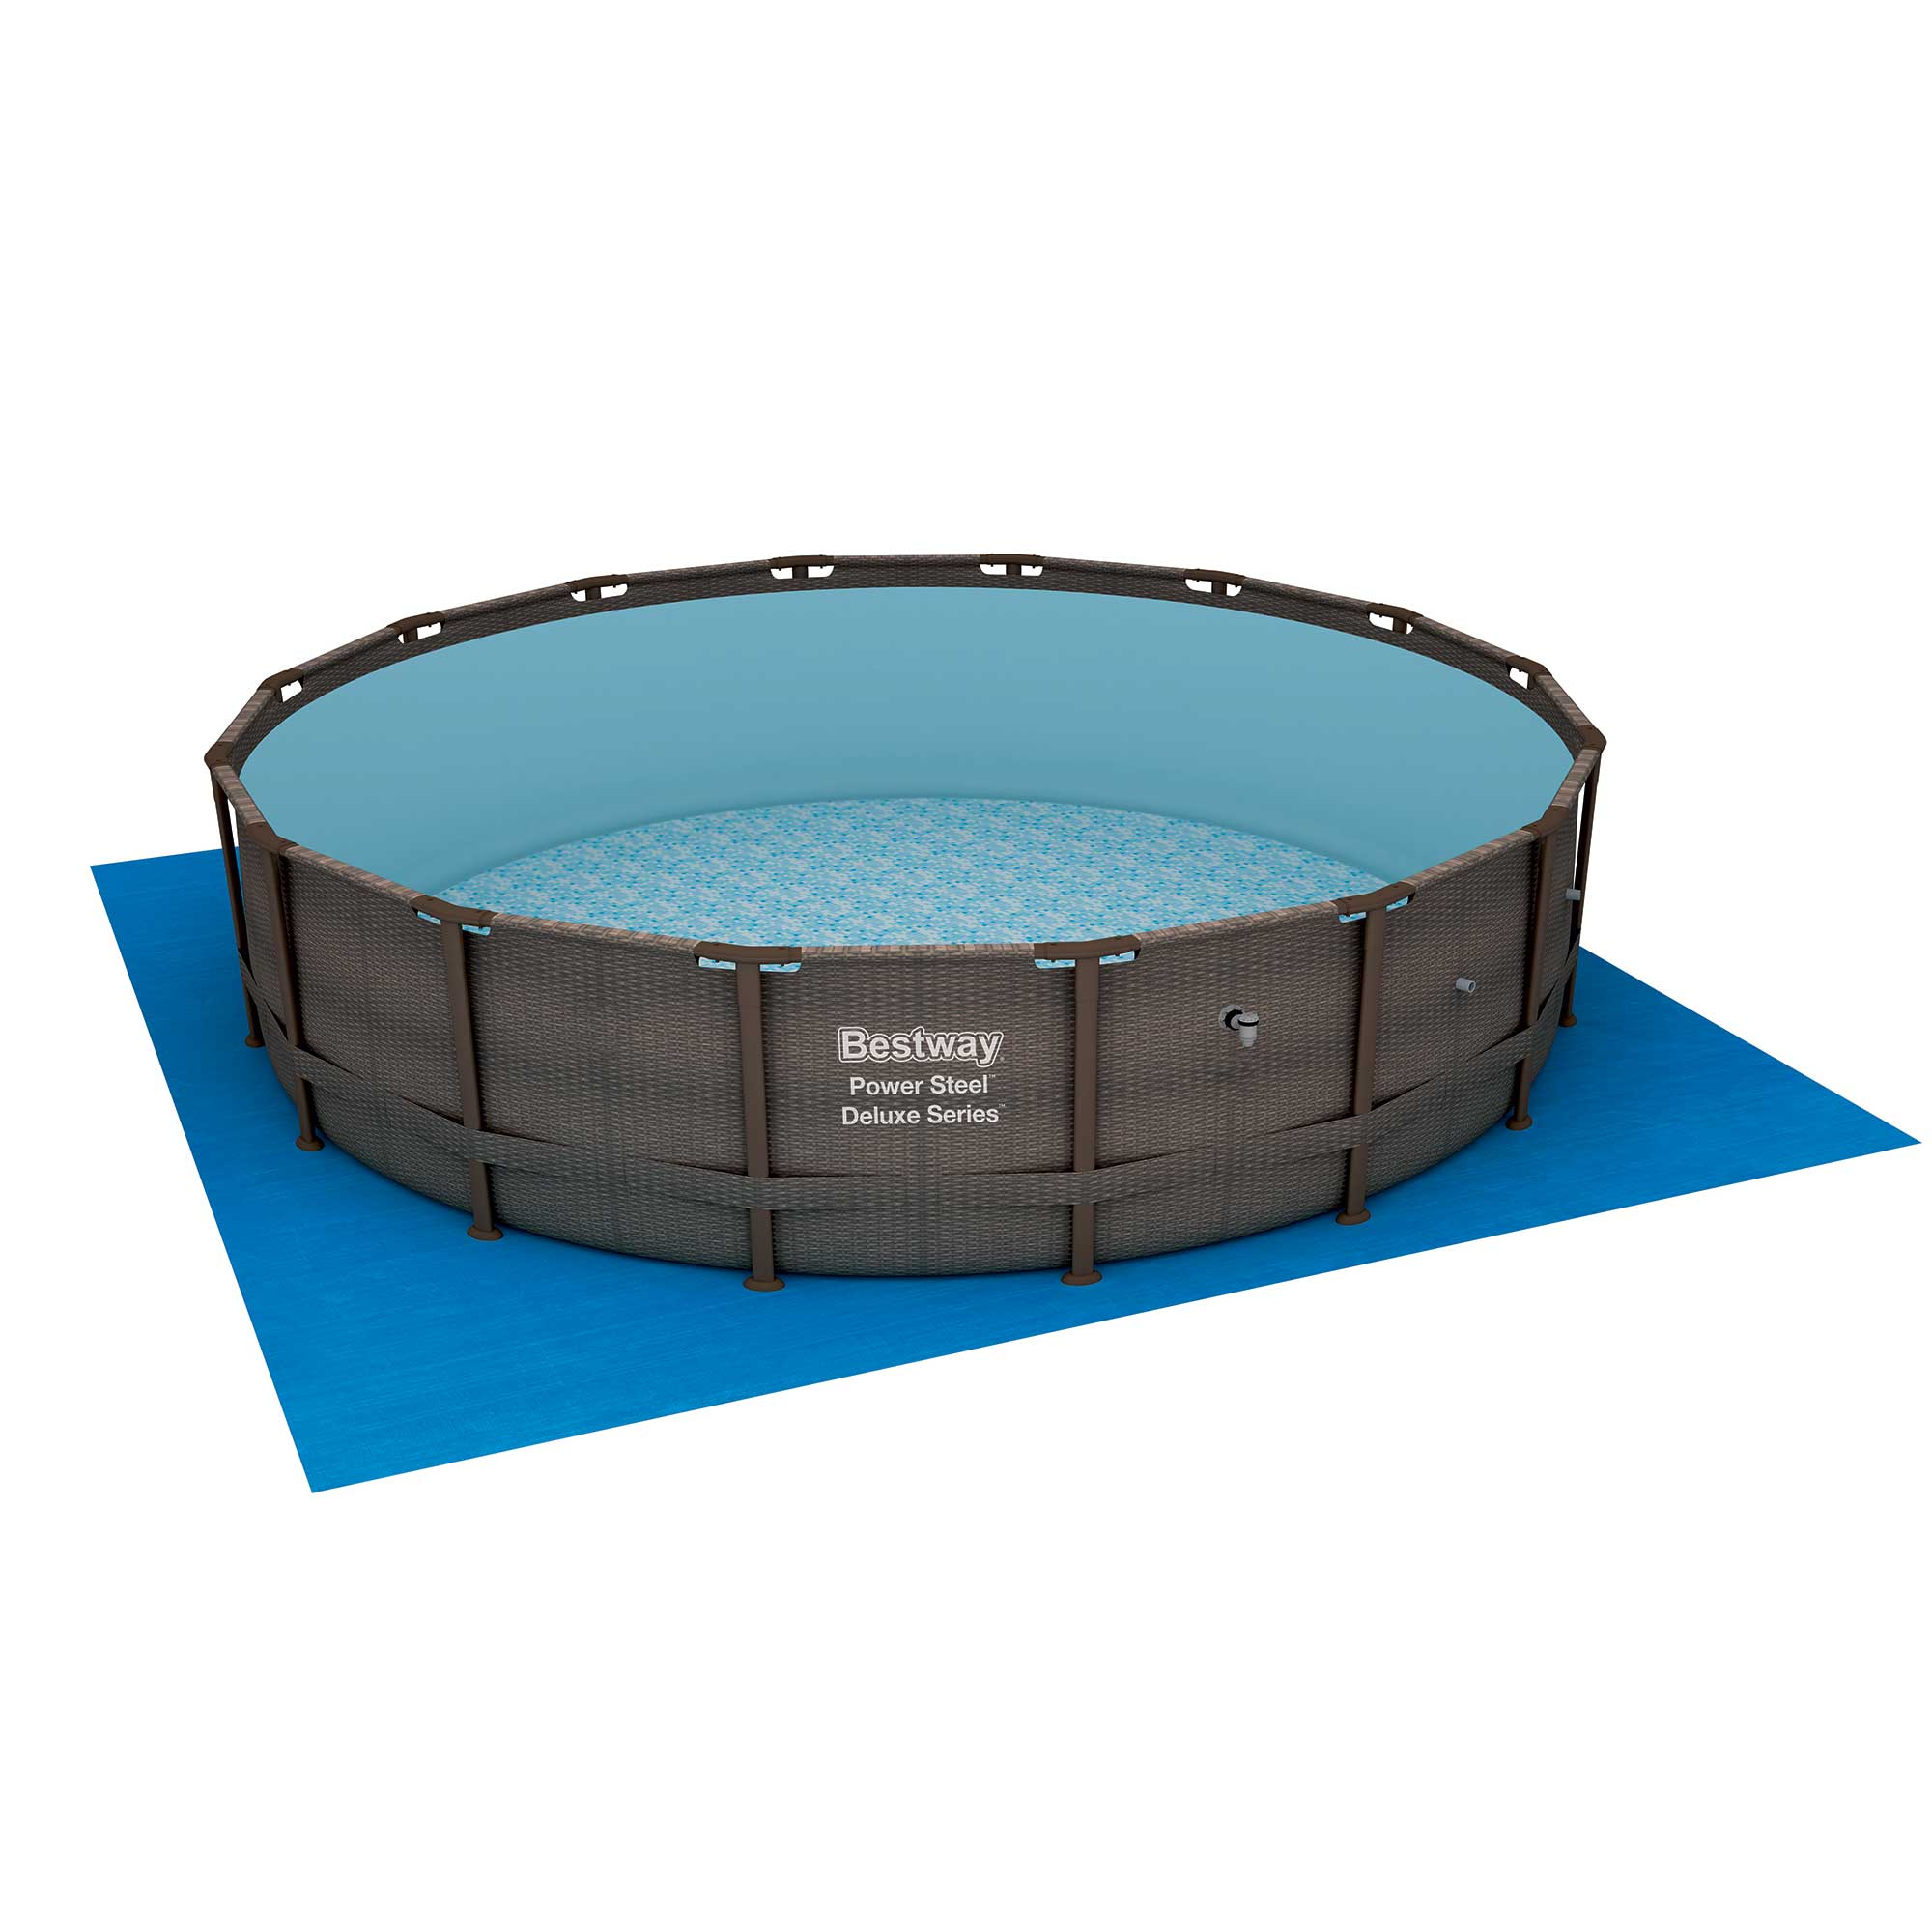 Bestway 14 X 42 Quot Power Steel Frame Above Ground Swimming Pool Set With Pump Walmart Com